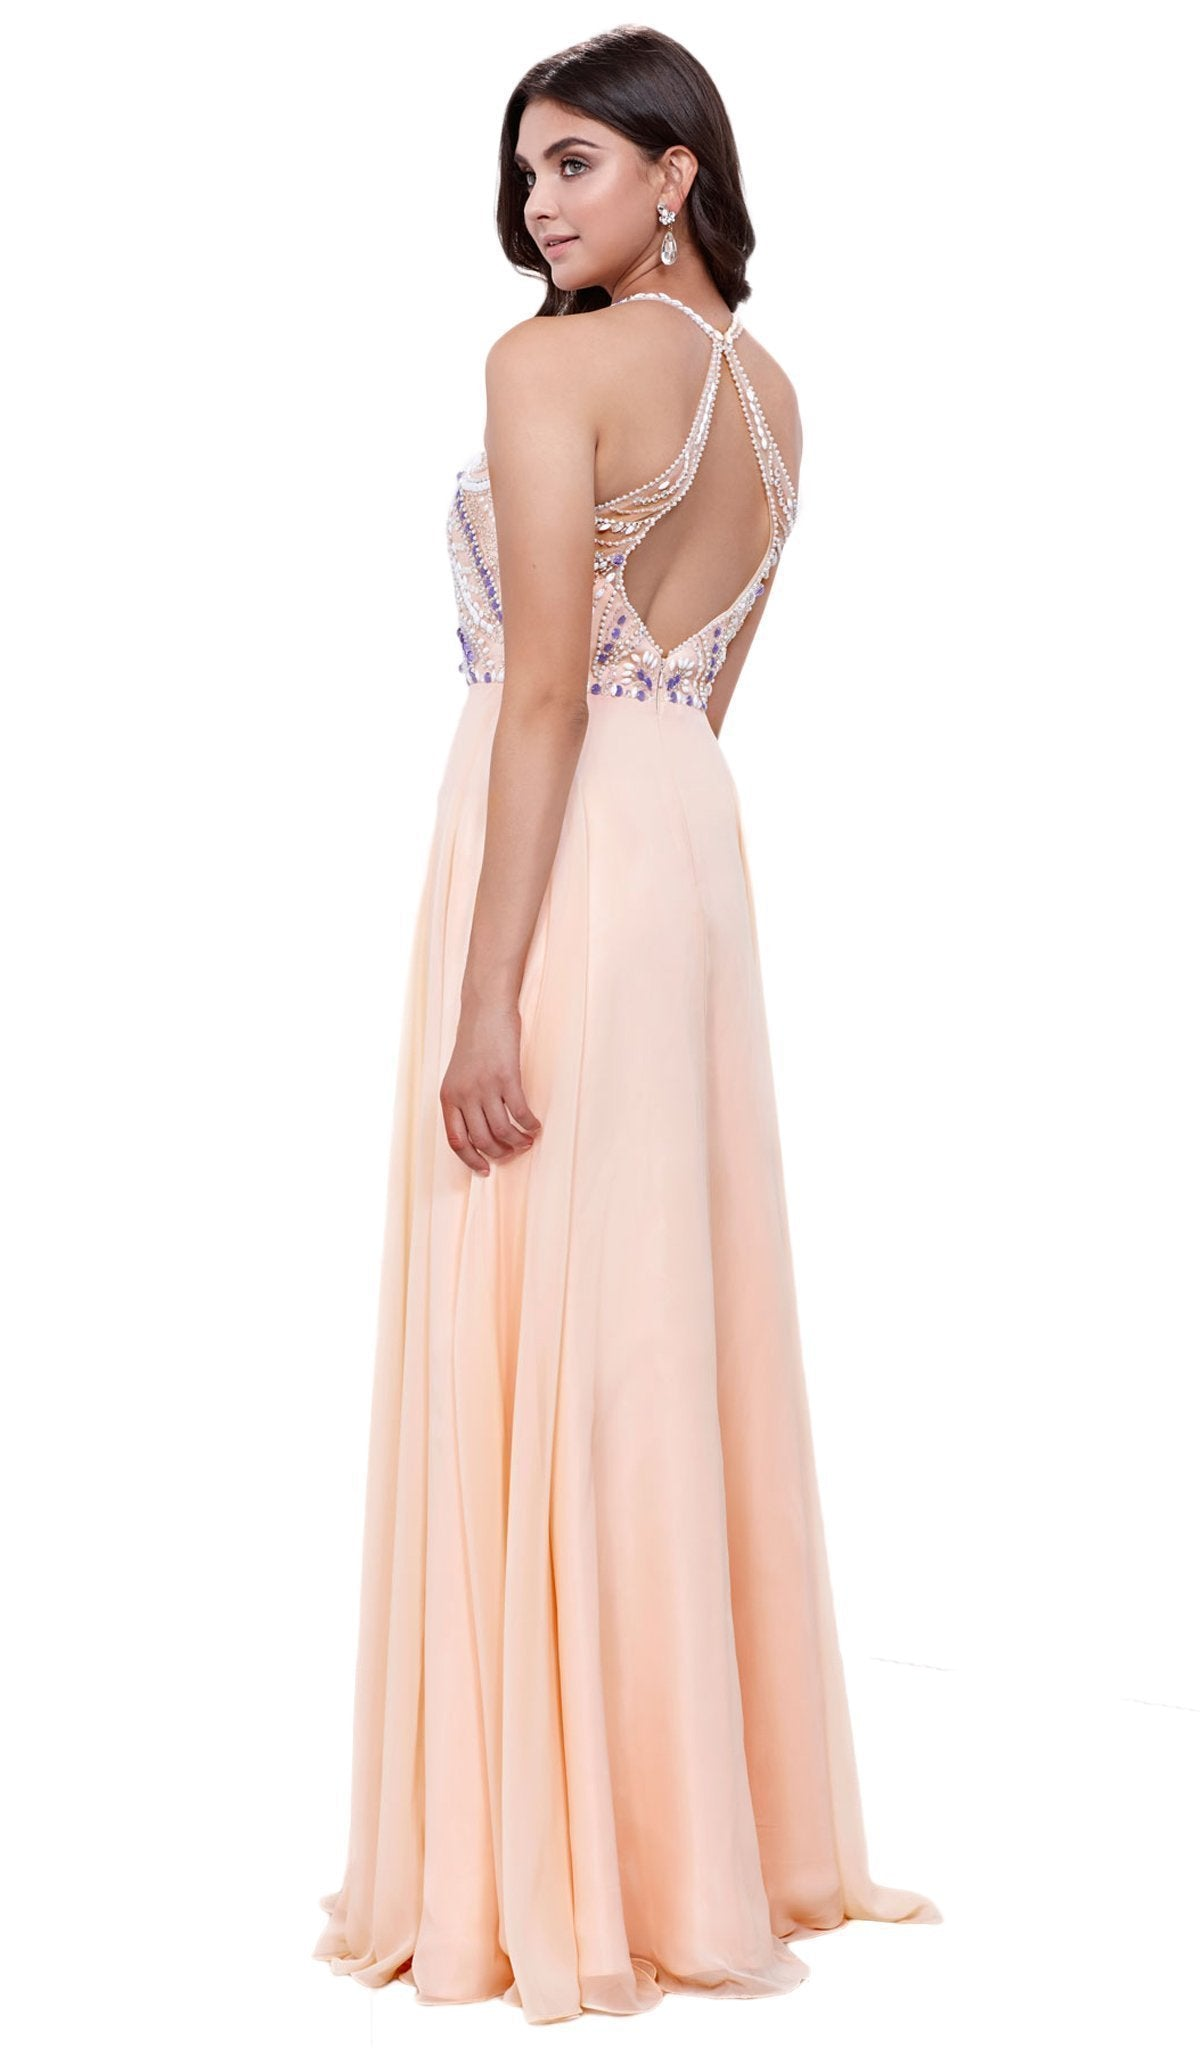 Nox Anabel - Bejeweled Halter Neck A-line Dress 8276SC